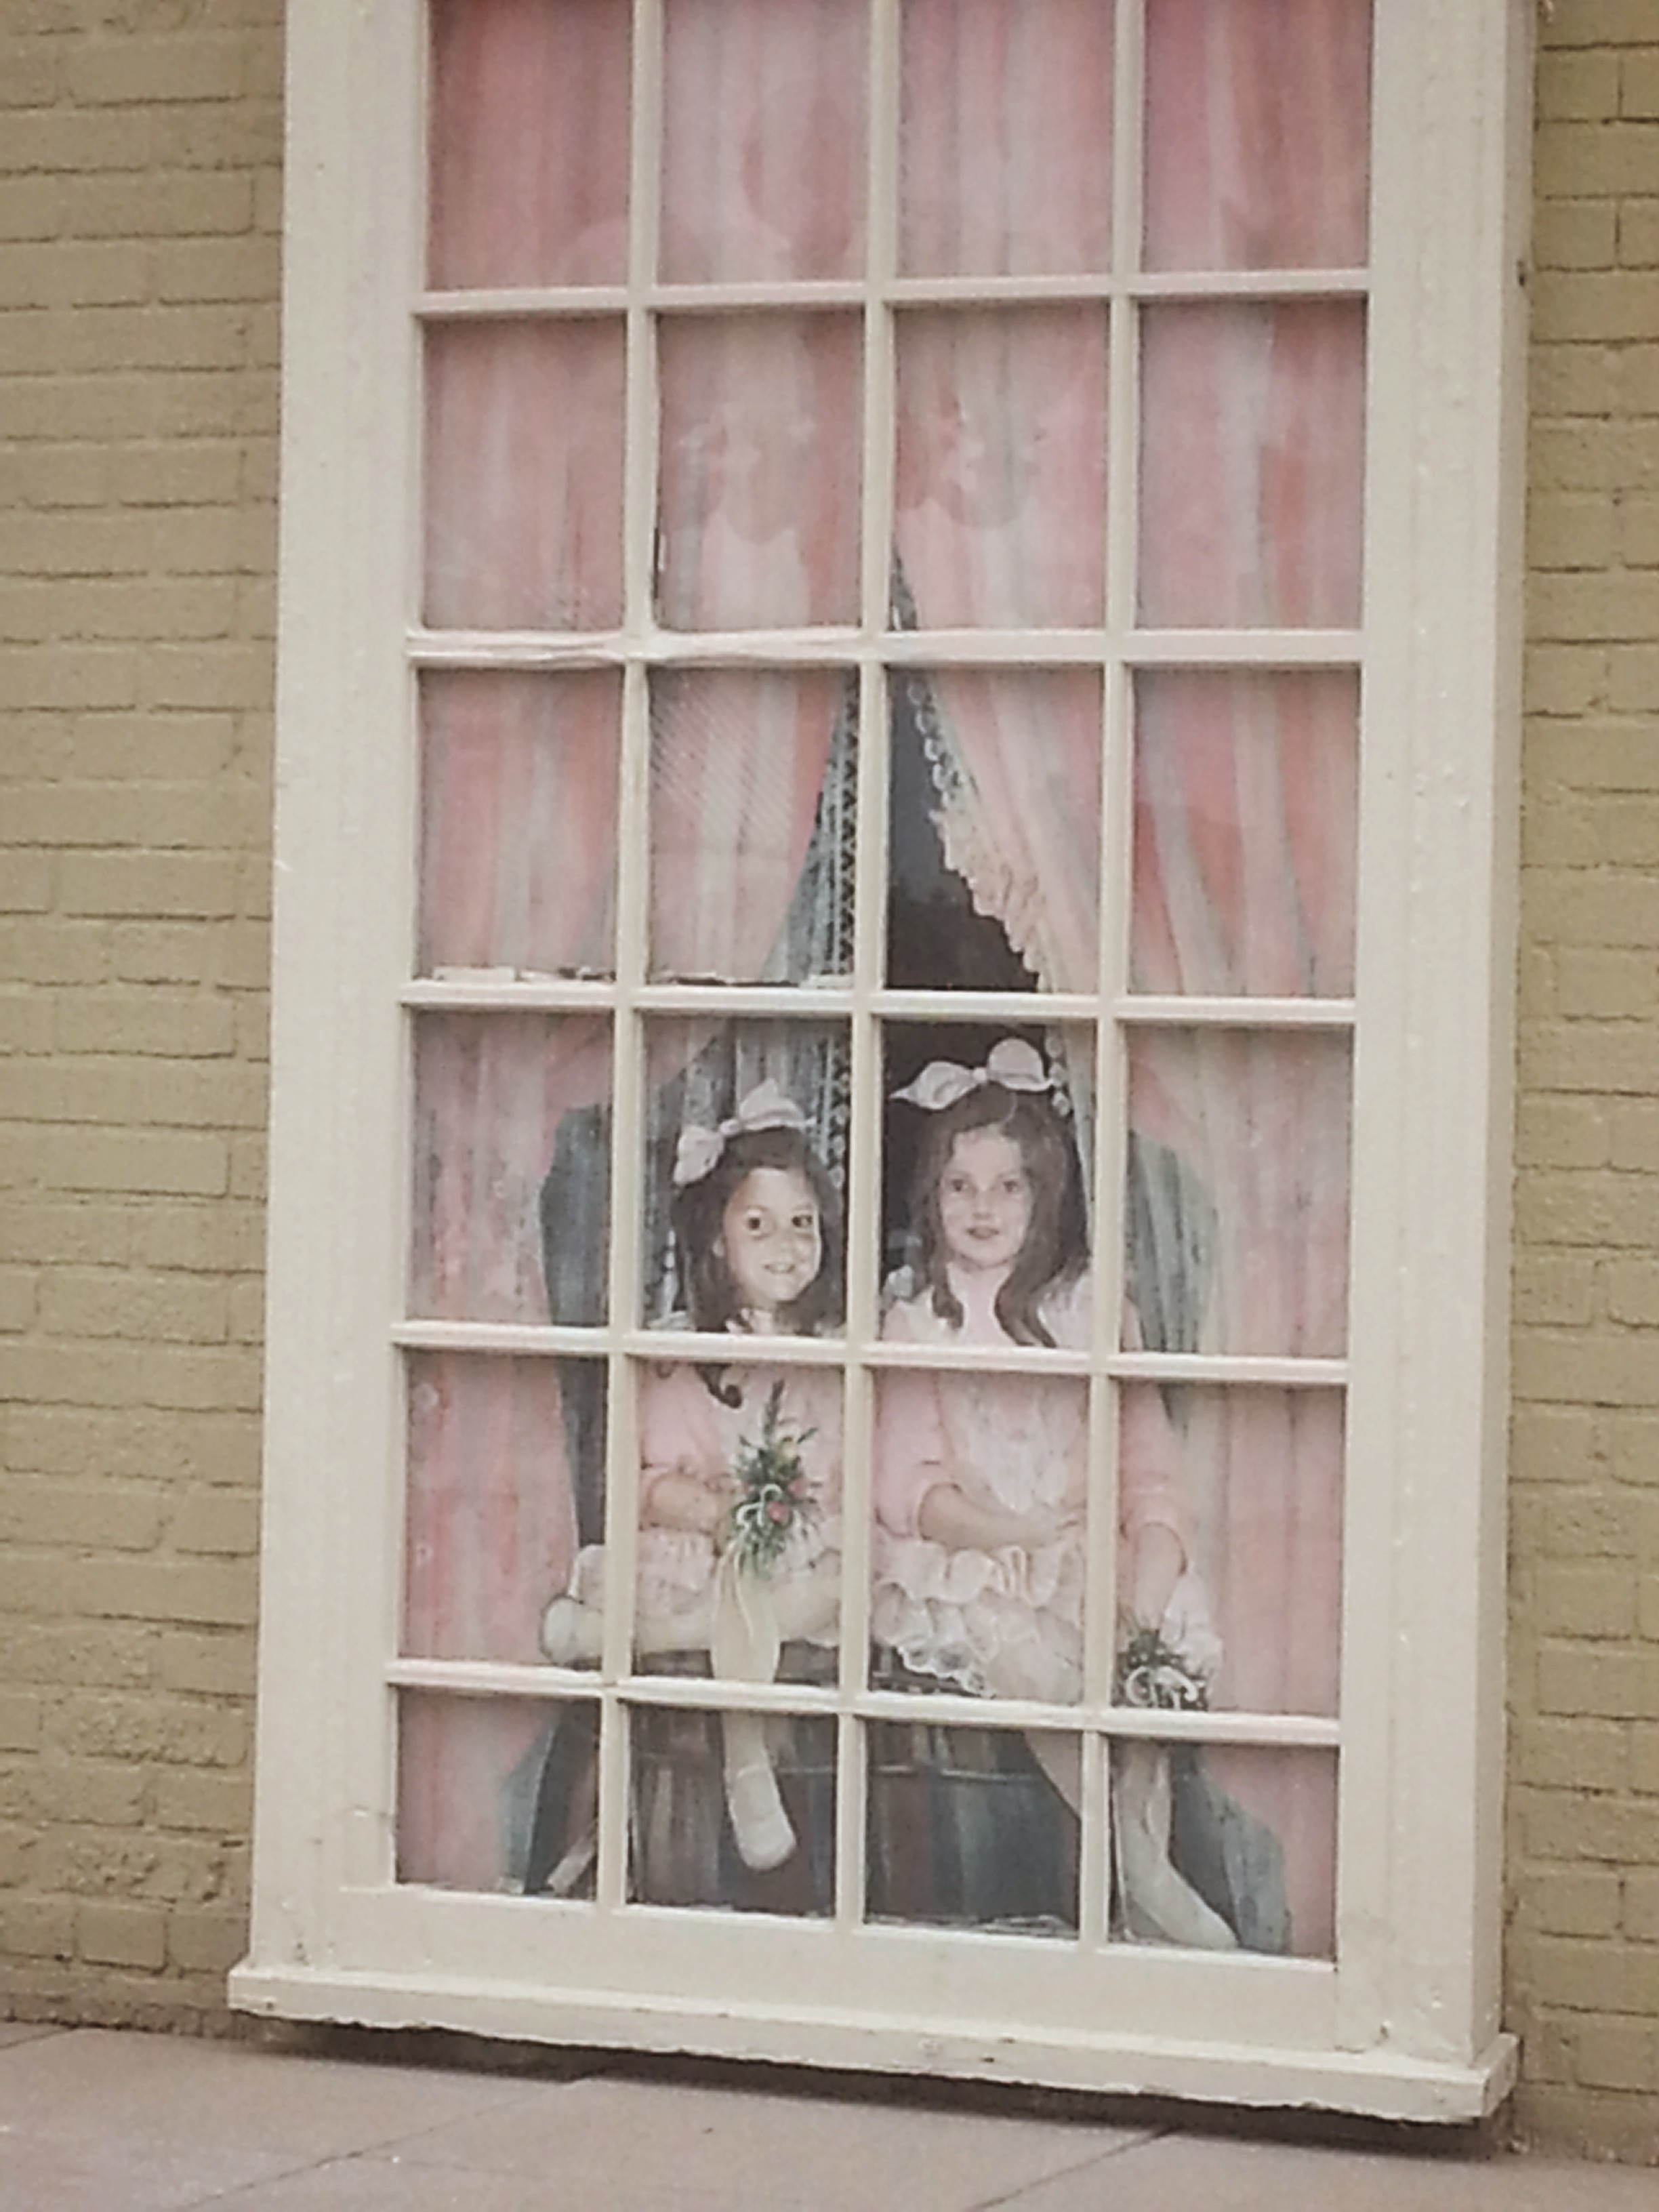 Creepy cardboard girls in the window of the duck penthouse!